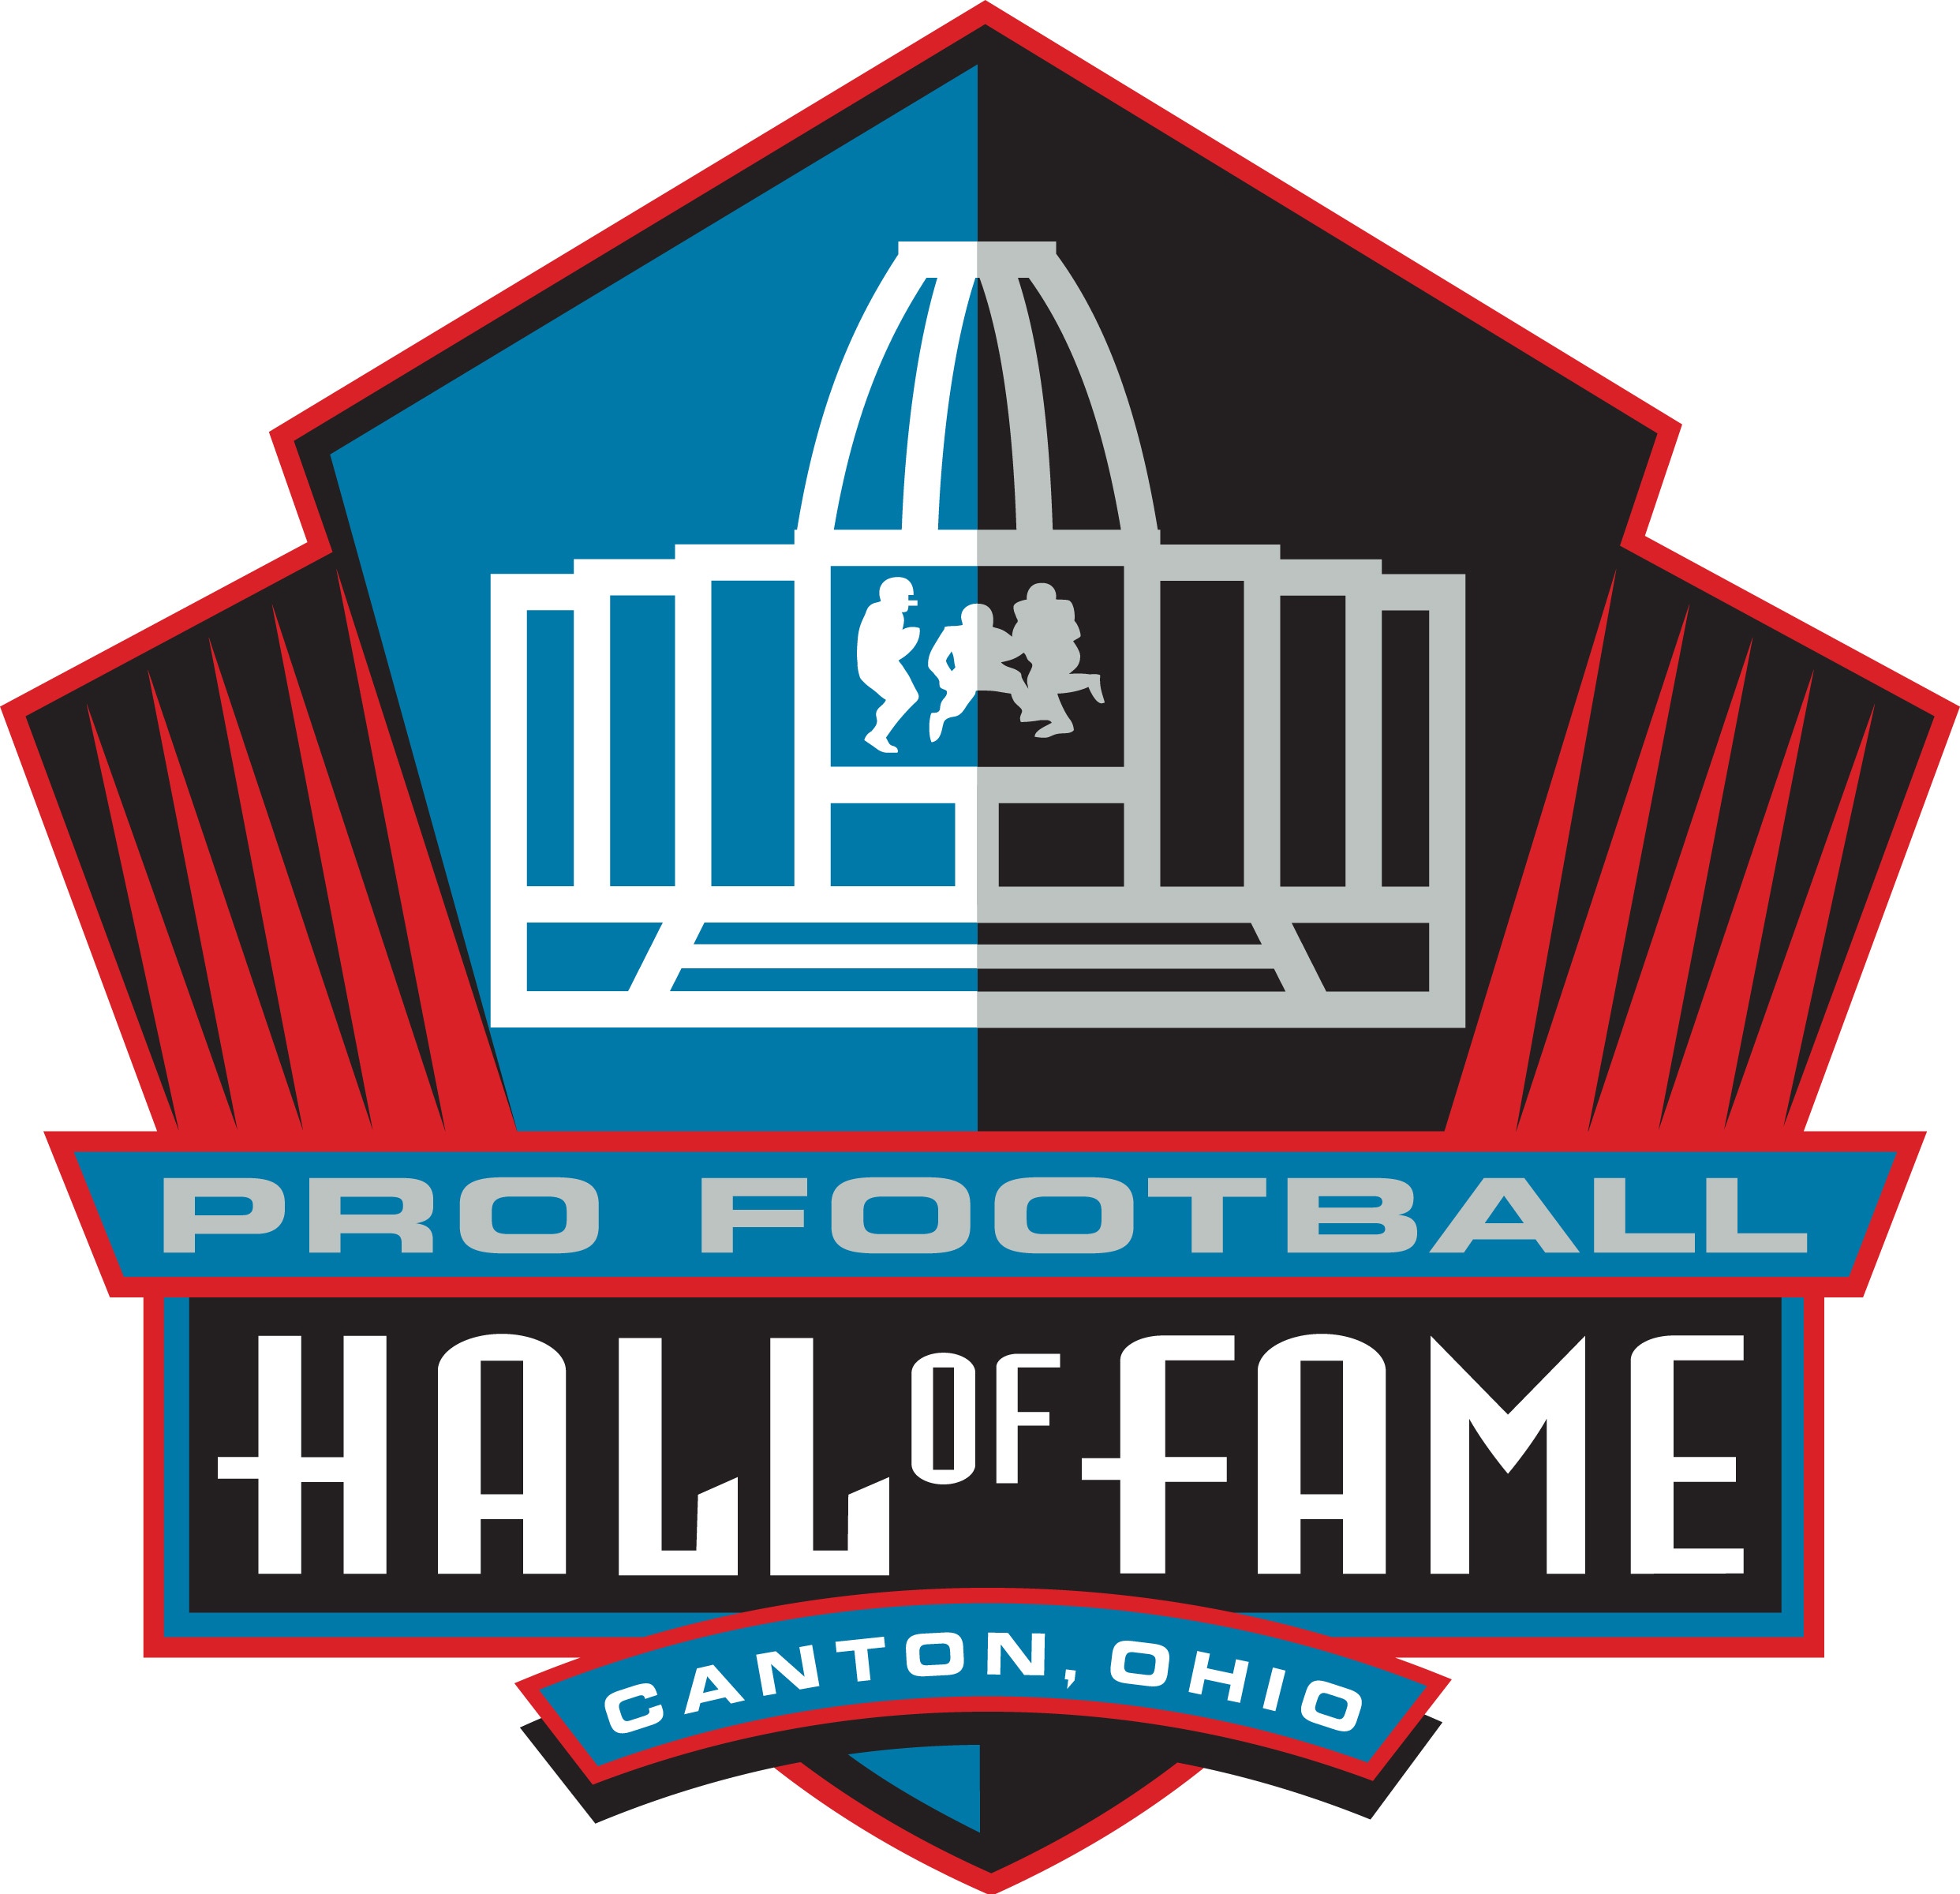 Canton Hall of Fame Autograph Signing - August 4th  Buy tickets or order something to be autographed and sent to you!